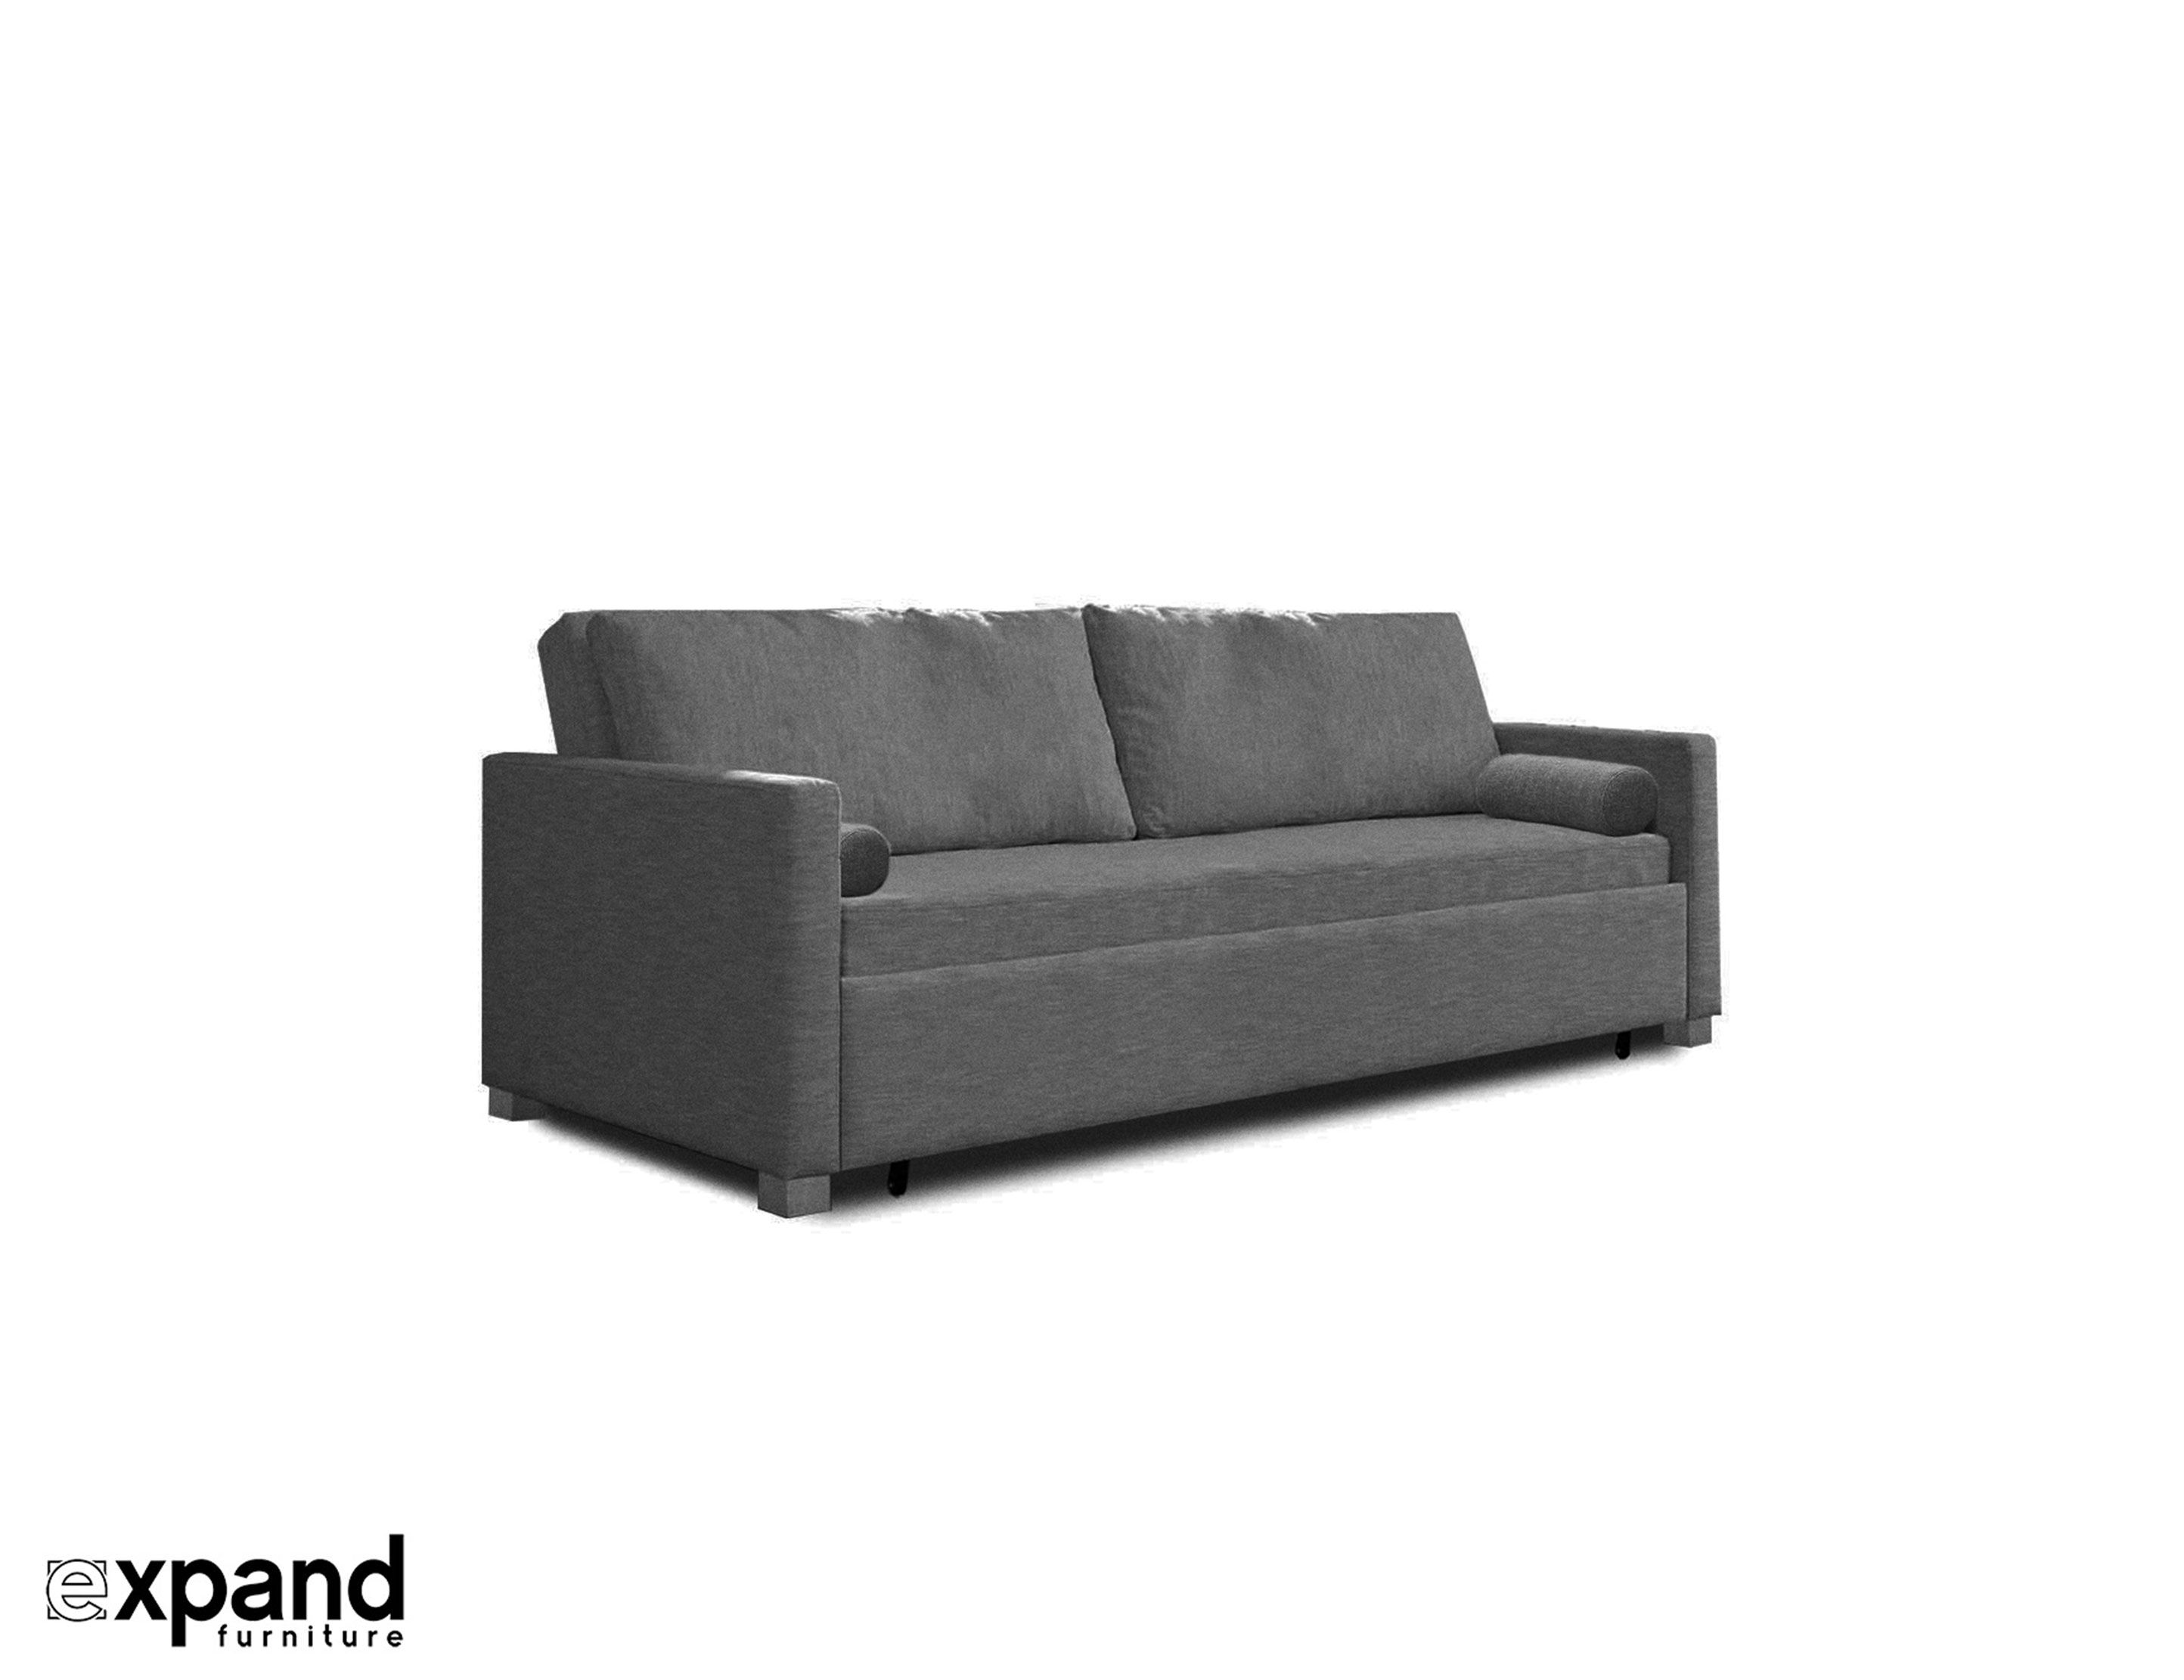 Harmony King Sofa Bed With Memory Foam Sofa Bed For Small